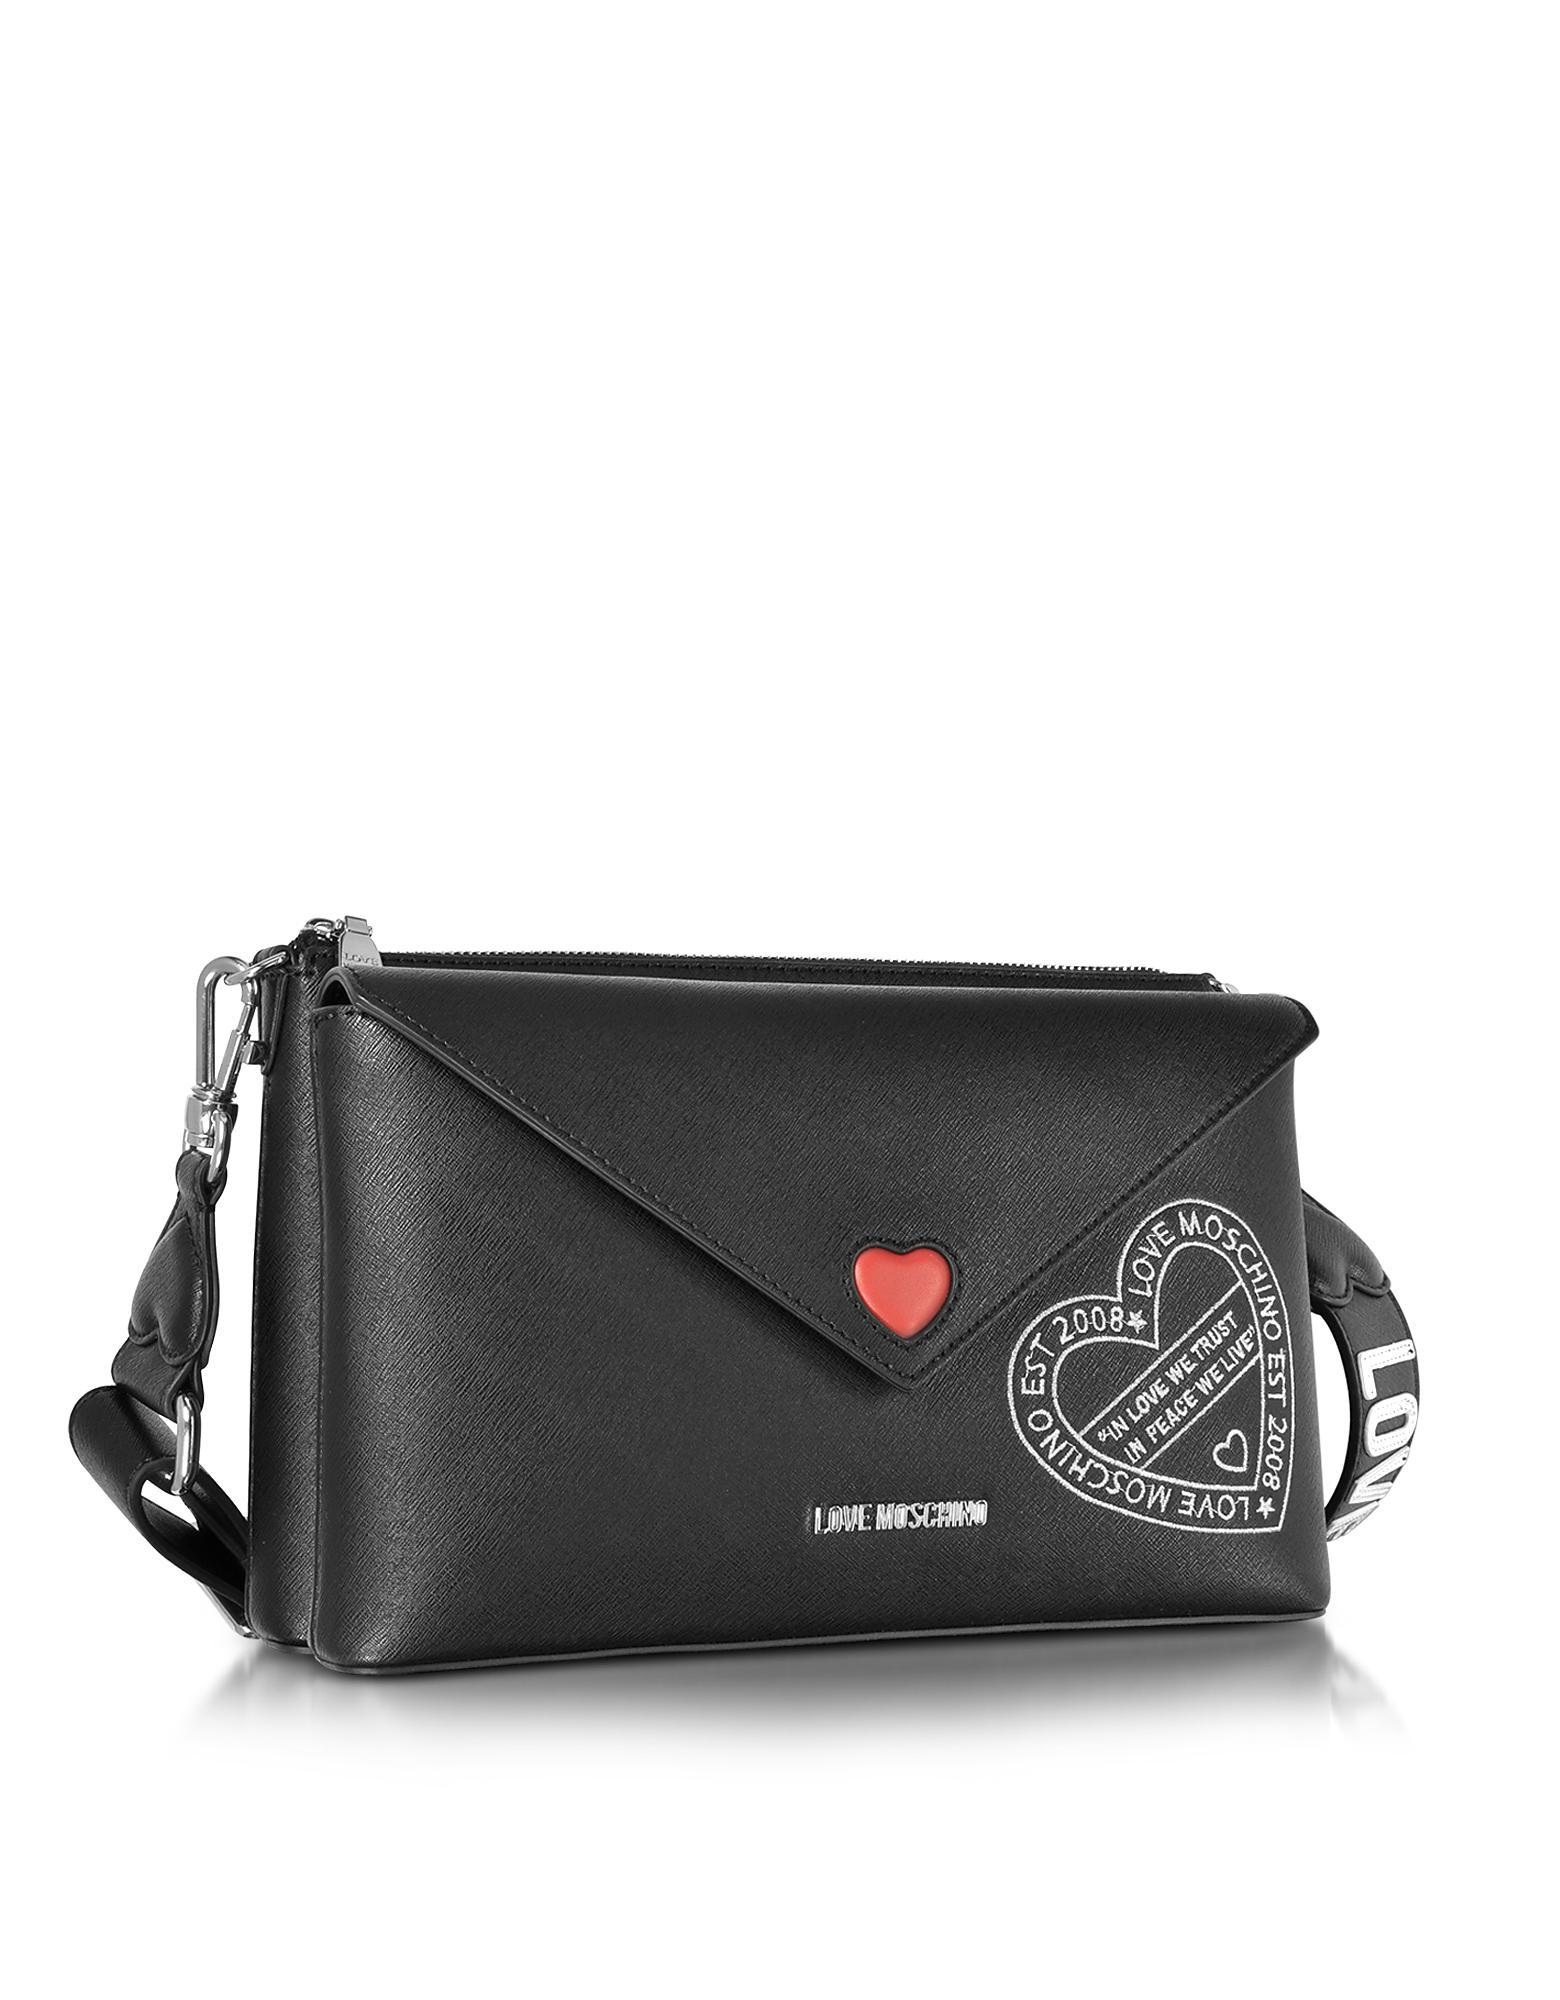 c8a368a894 Love Moschino Pocket Love Black Eco Leather Shoulder Bag in Black - Lyst